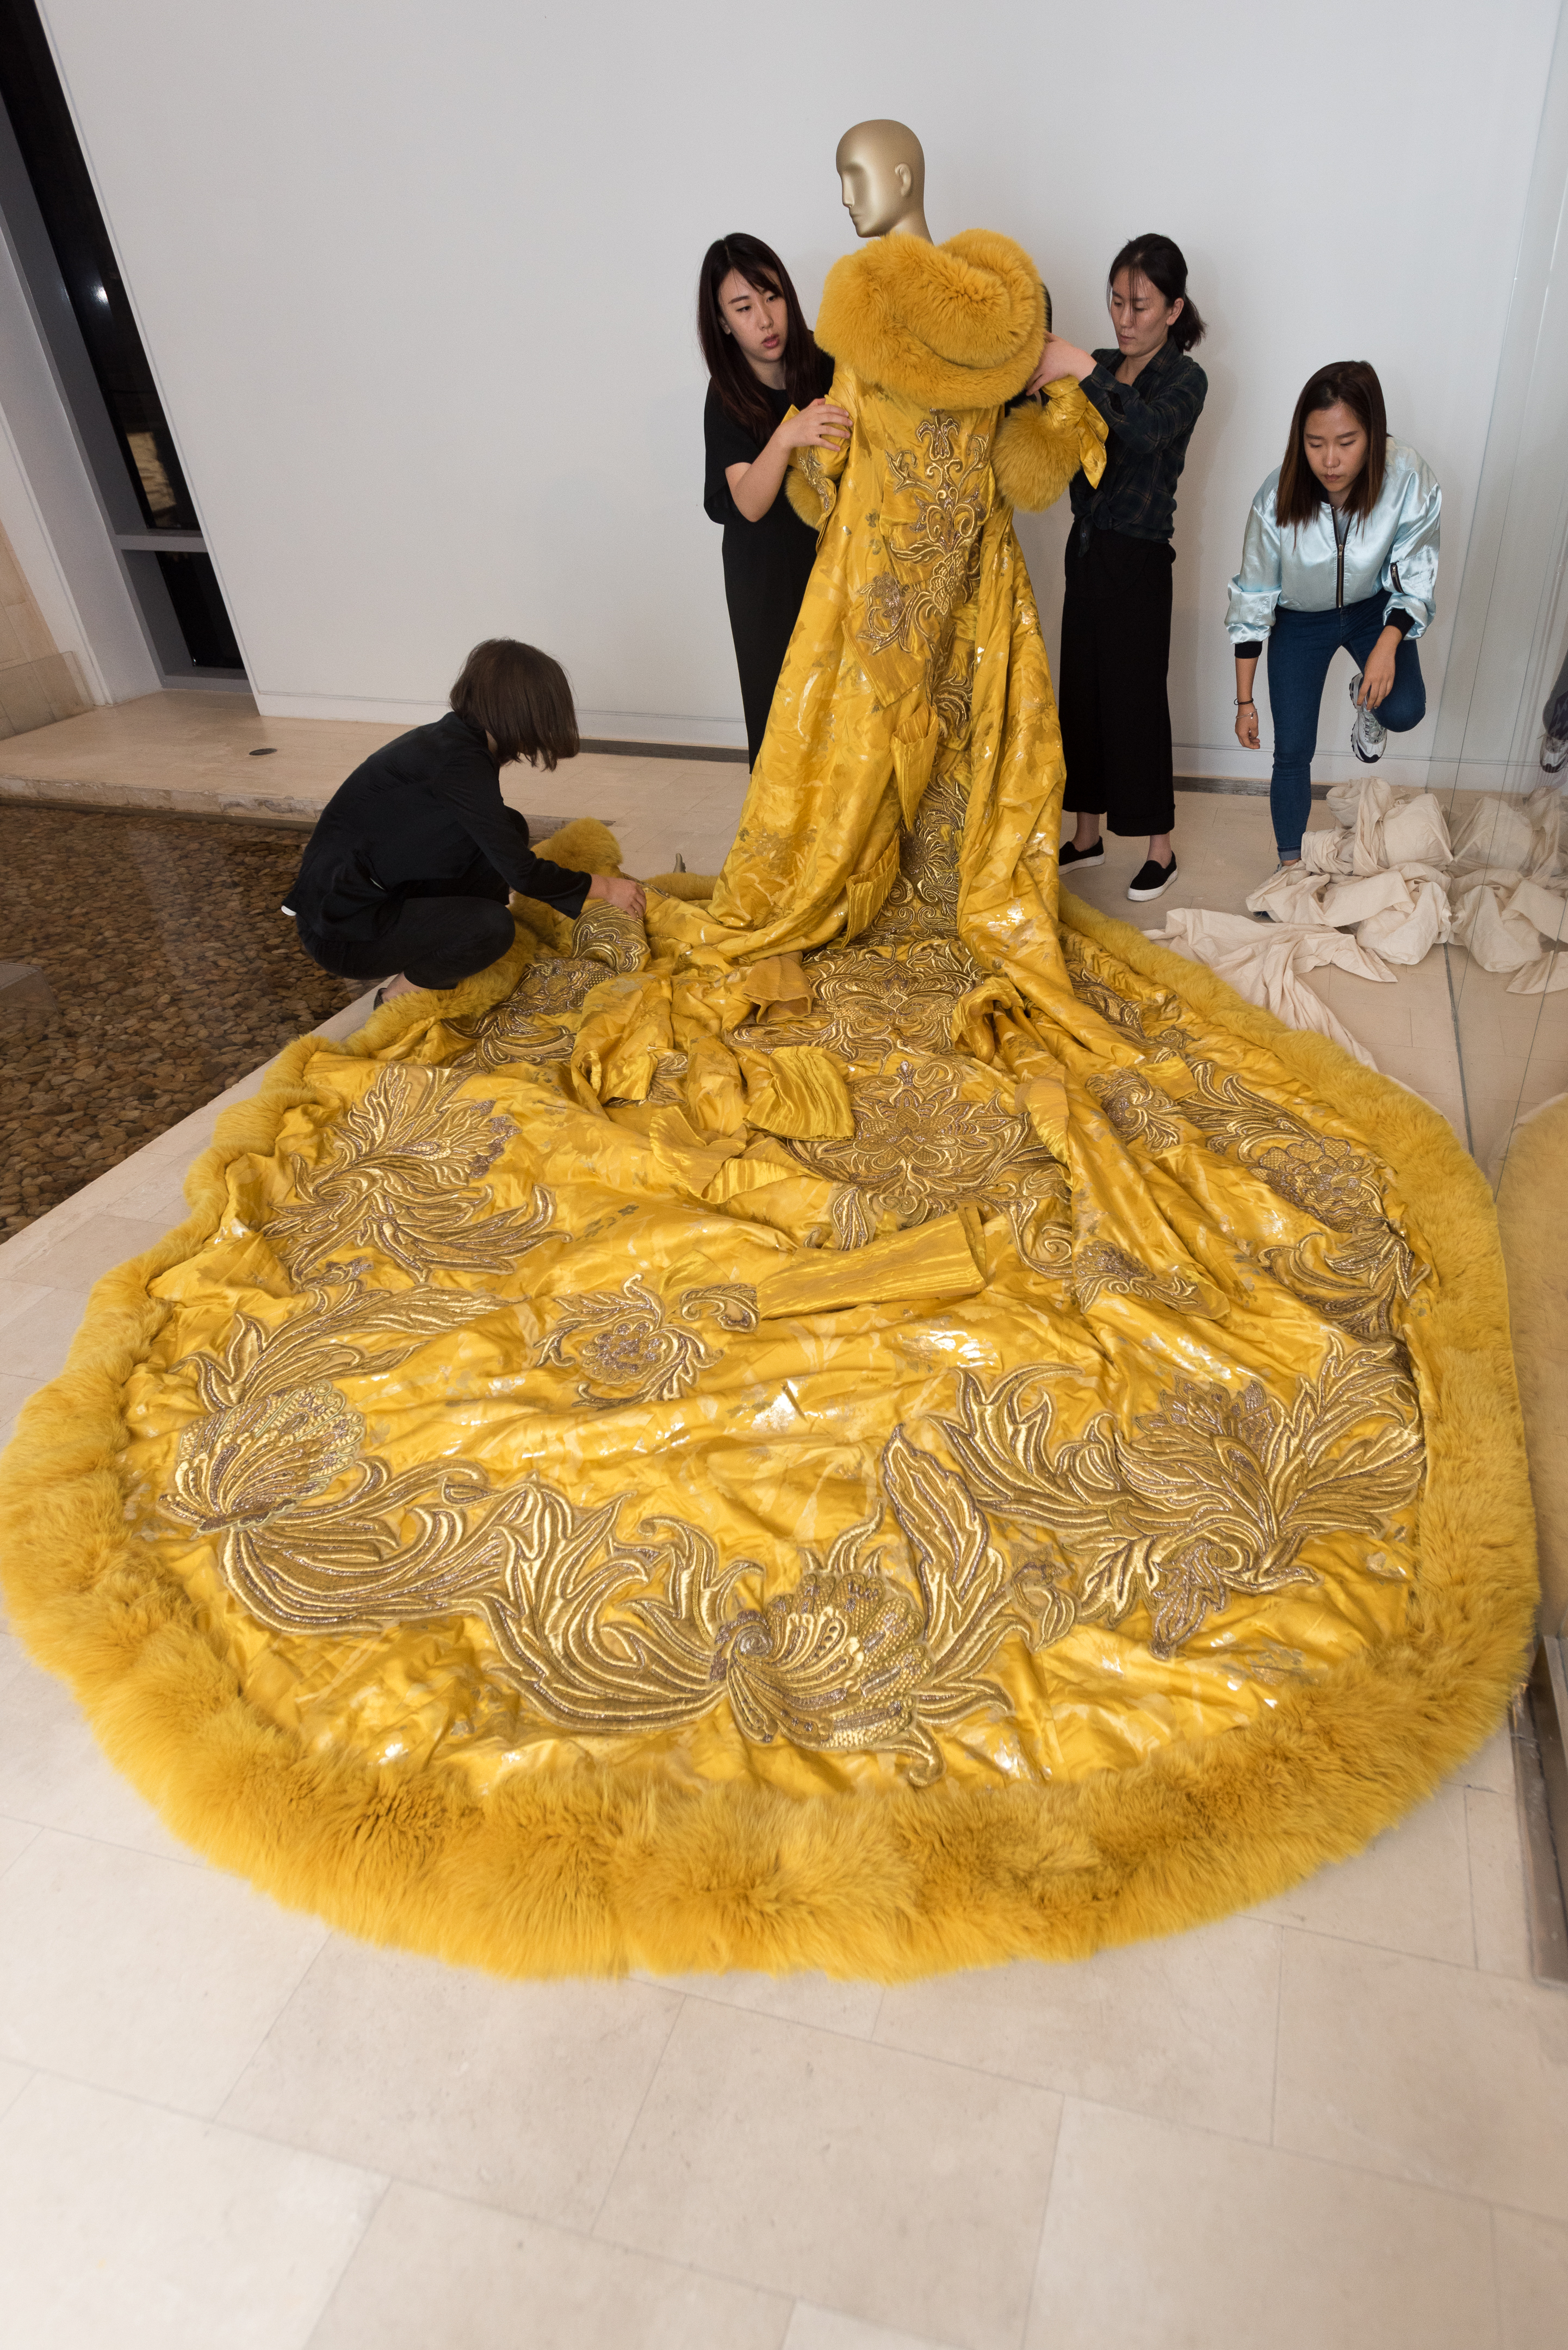 Volunteers at the China Institute dress a mannequin with the dress worn by Rihanna to the Met Gala.